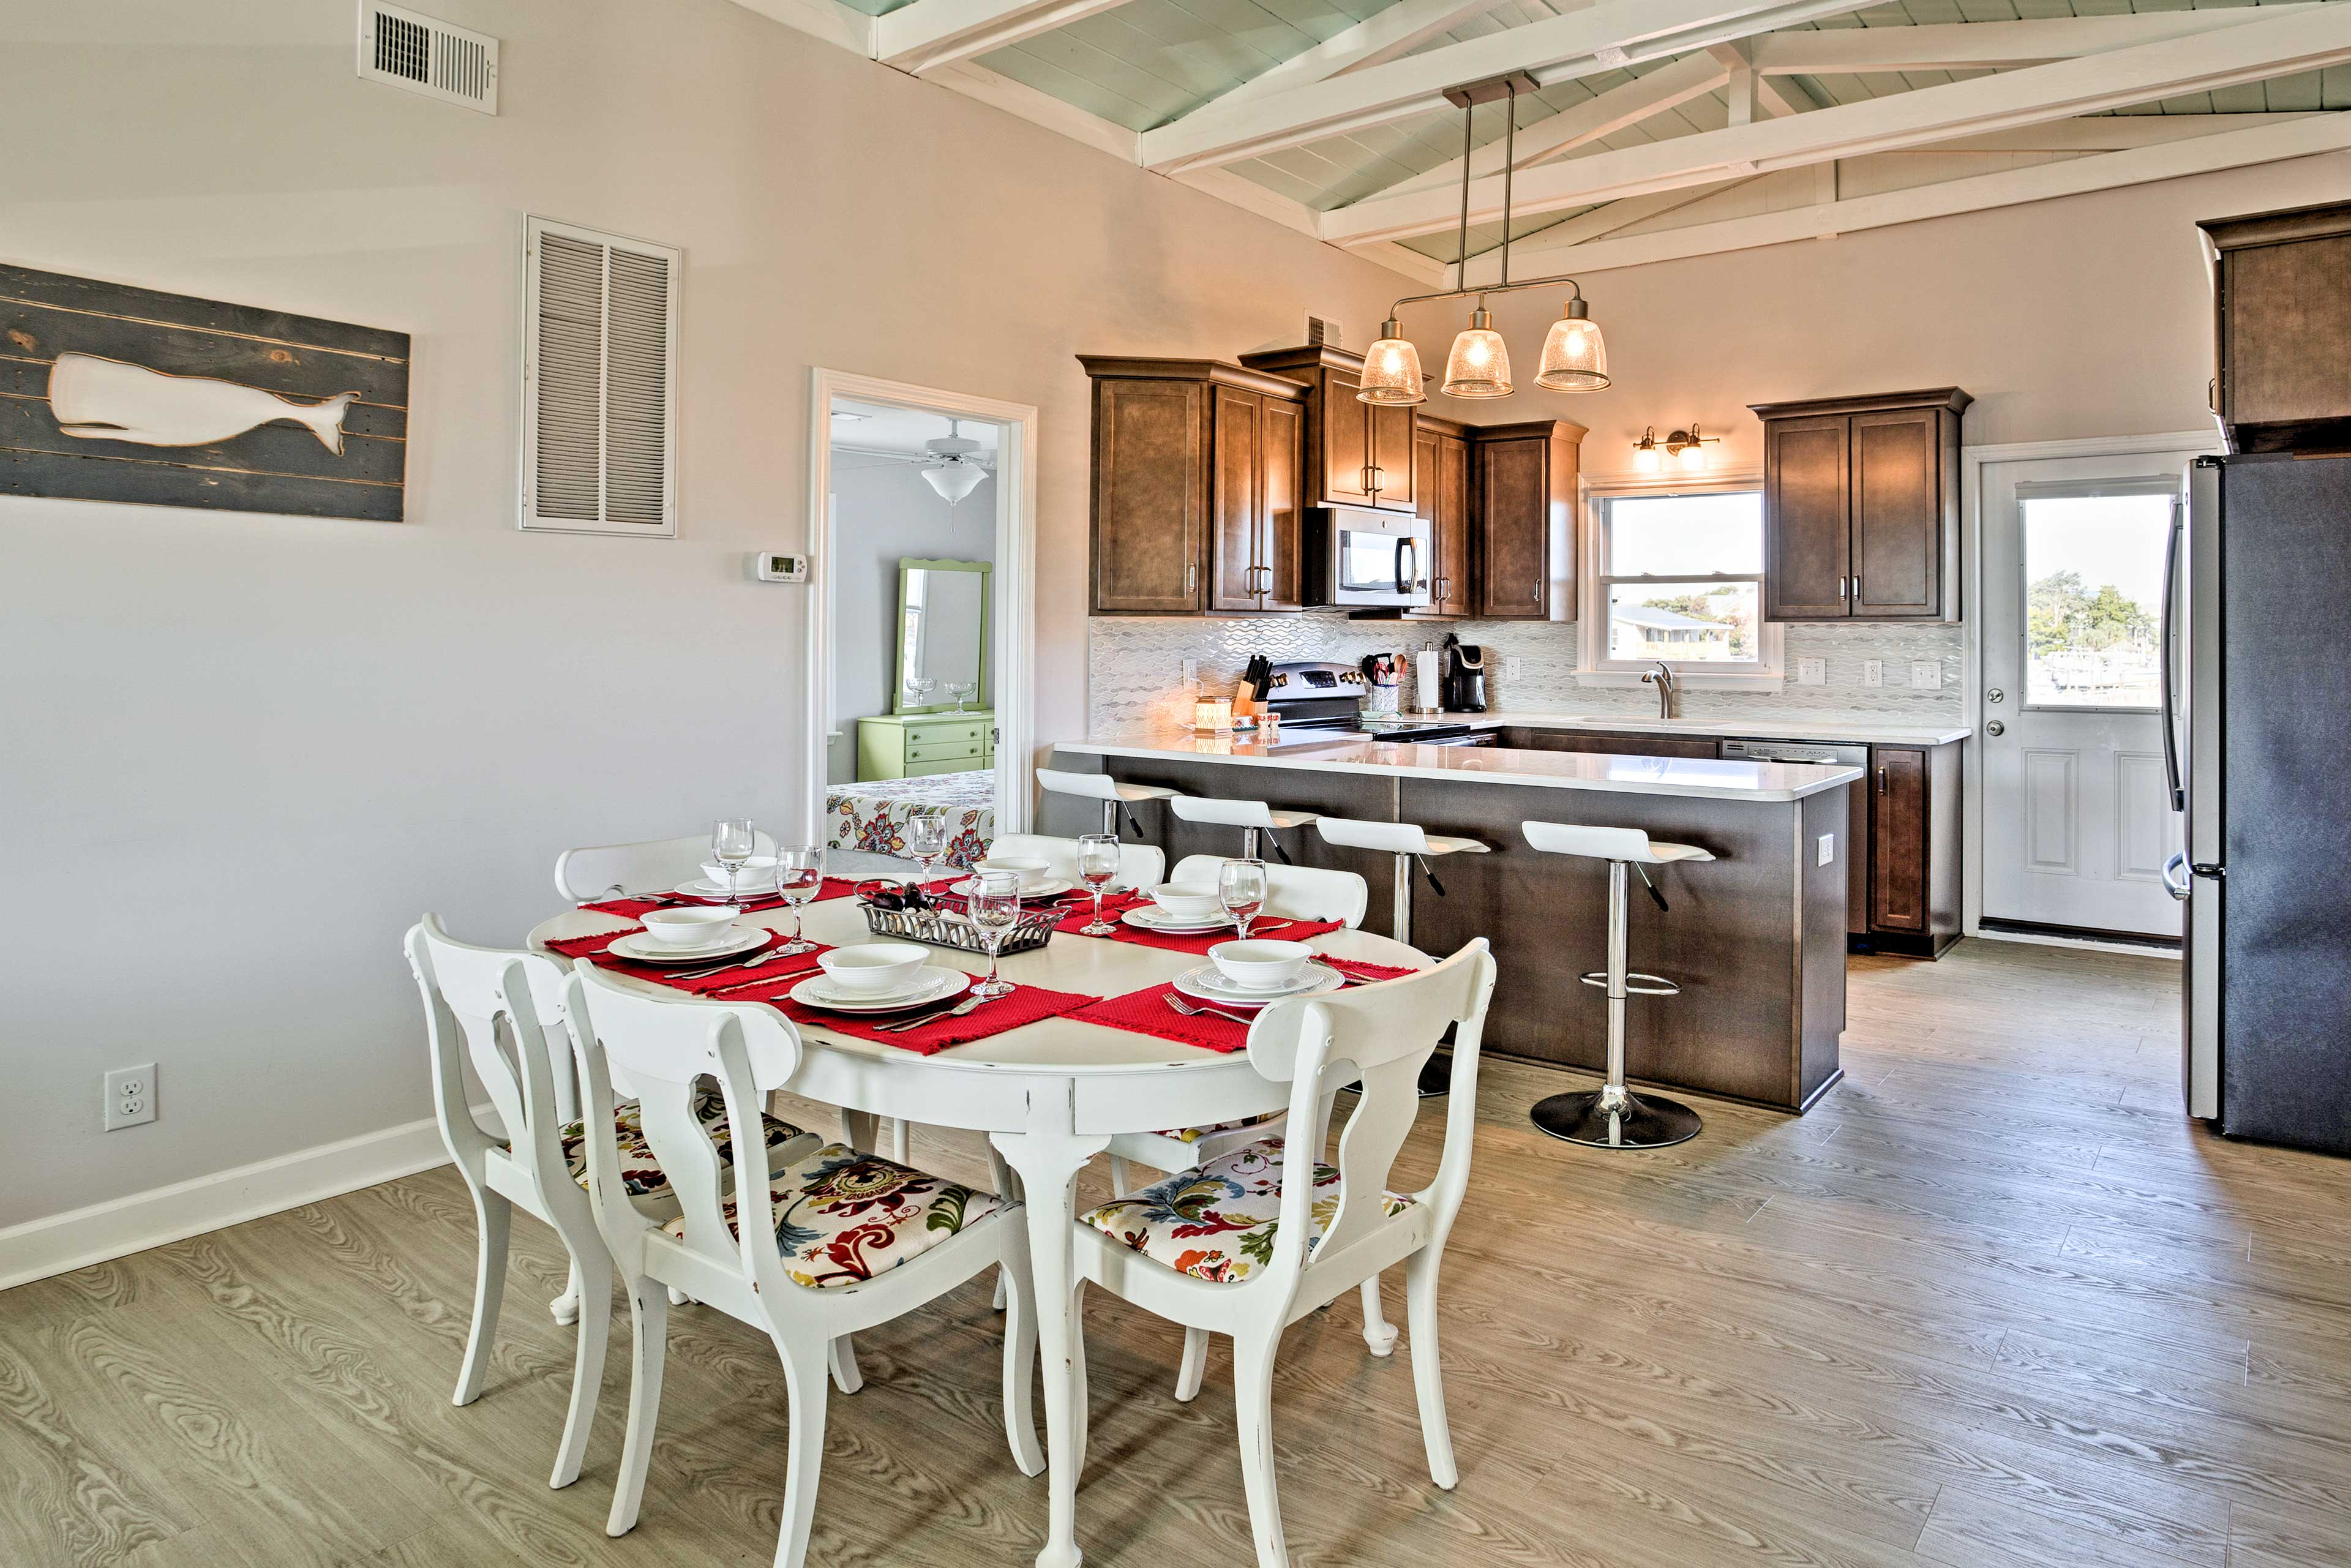 Upstairs, the home boasts another living, kitchen, and dining area.